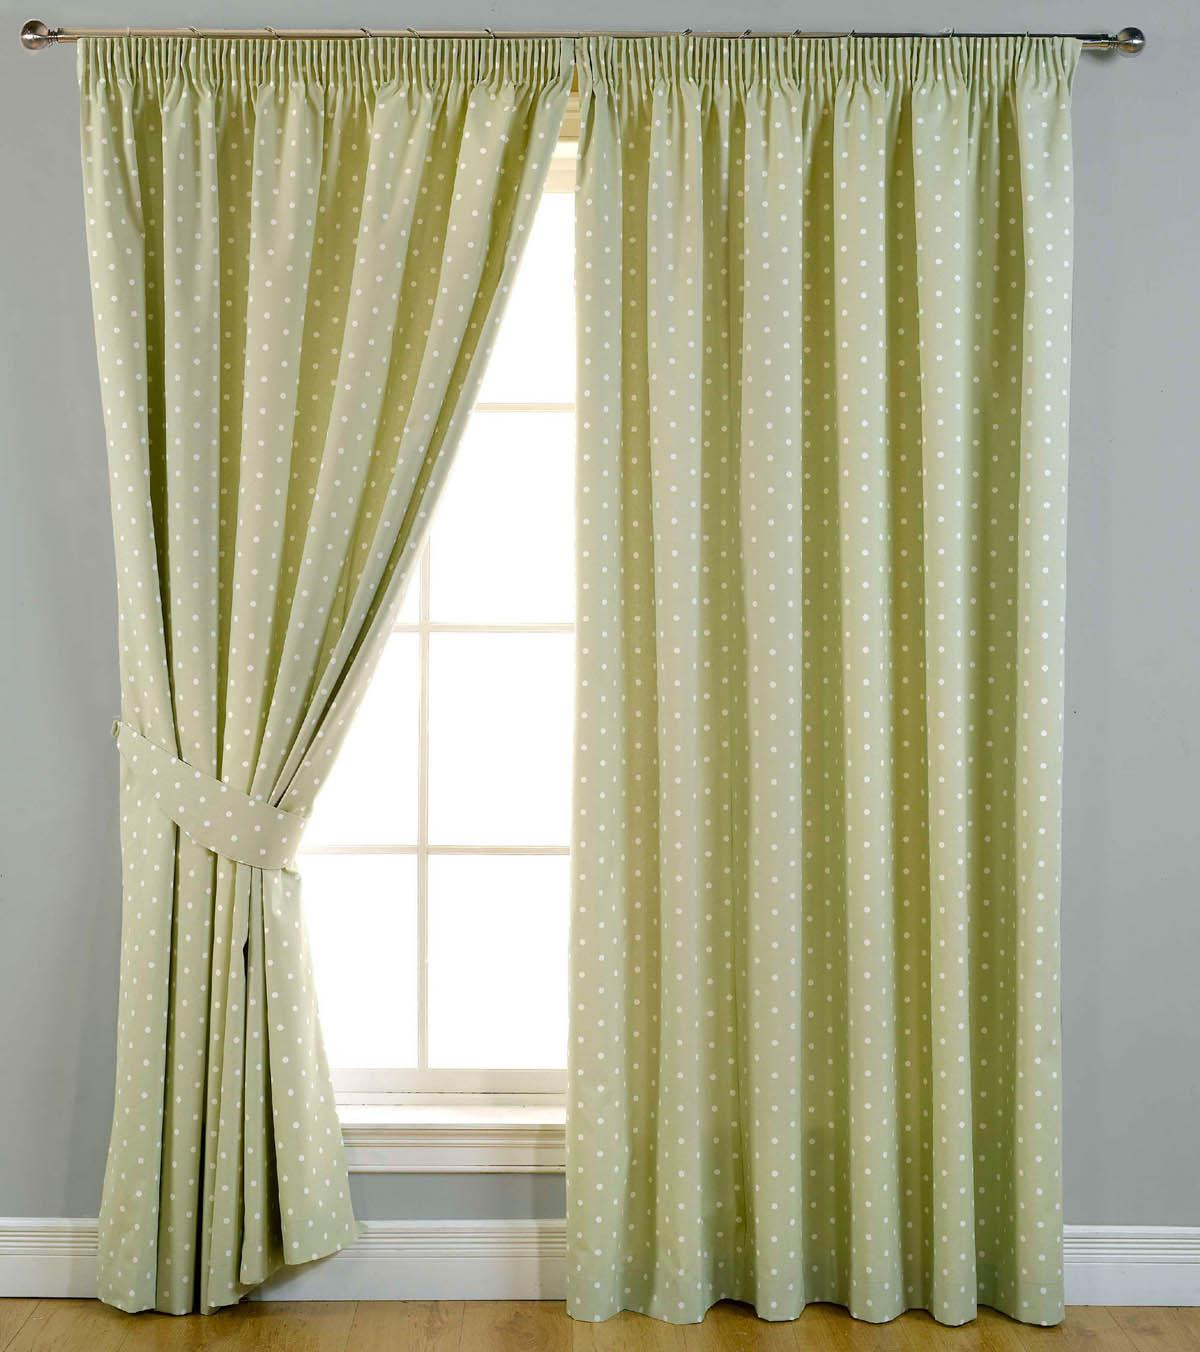 Cheap Blackout Curtains | Light Blocking Drapes | Blackout Sheets